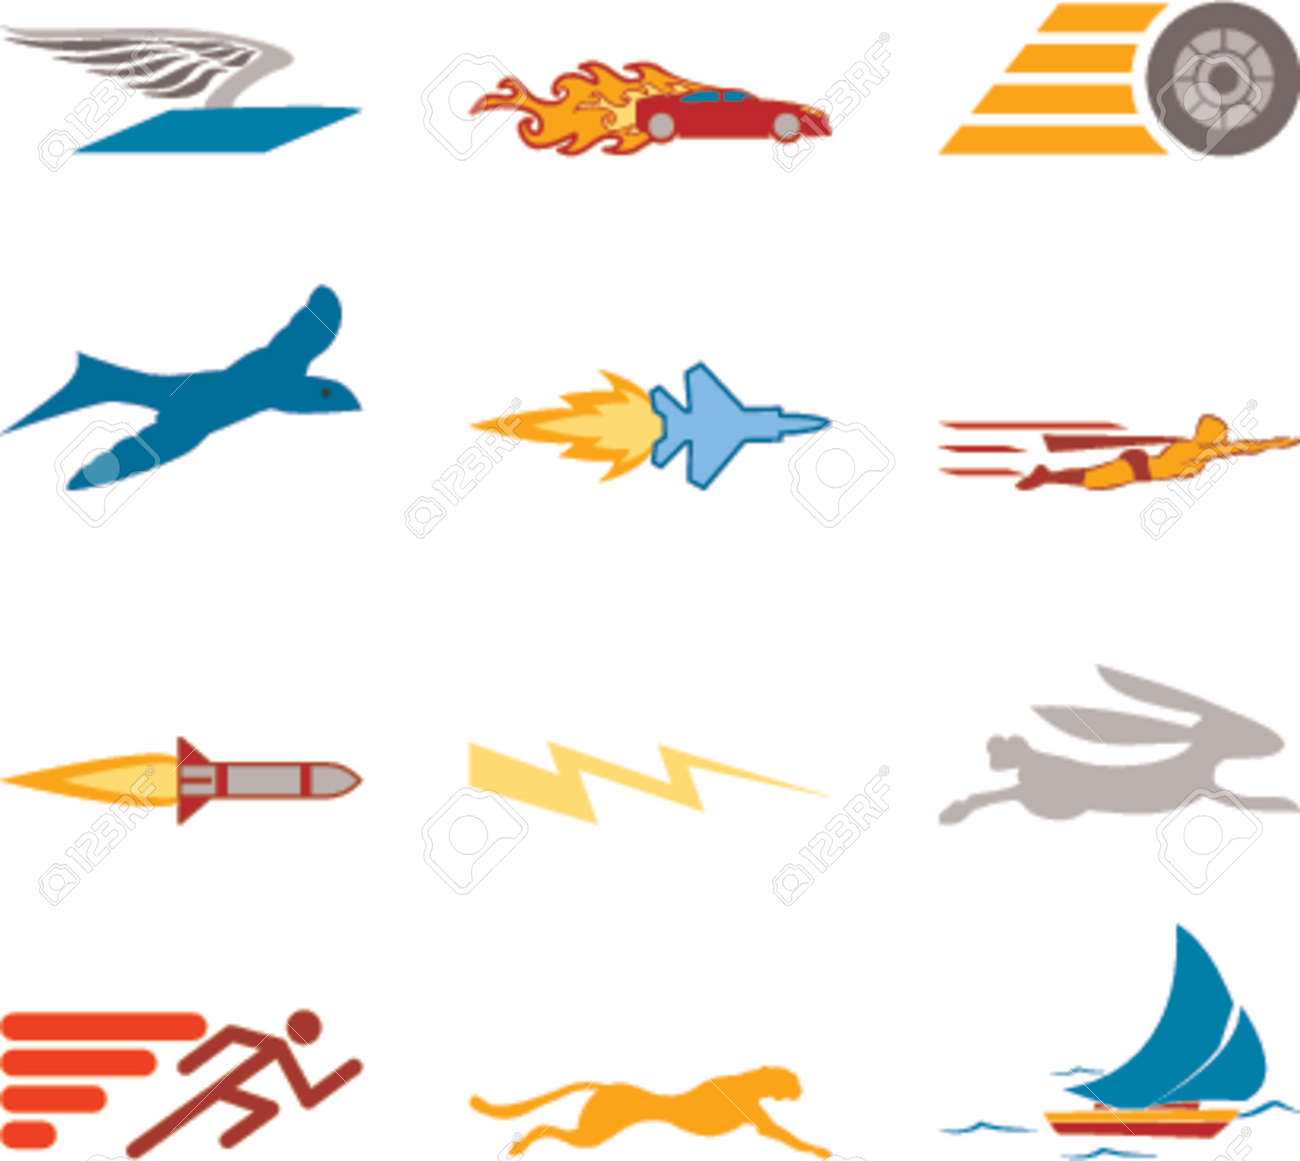 Speed Icon Set Series Design Elements A conceptual icon set relating to speed, being fast, and or efficient. Stock Vector - 791411